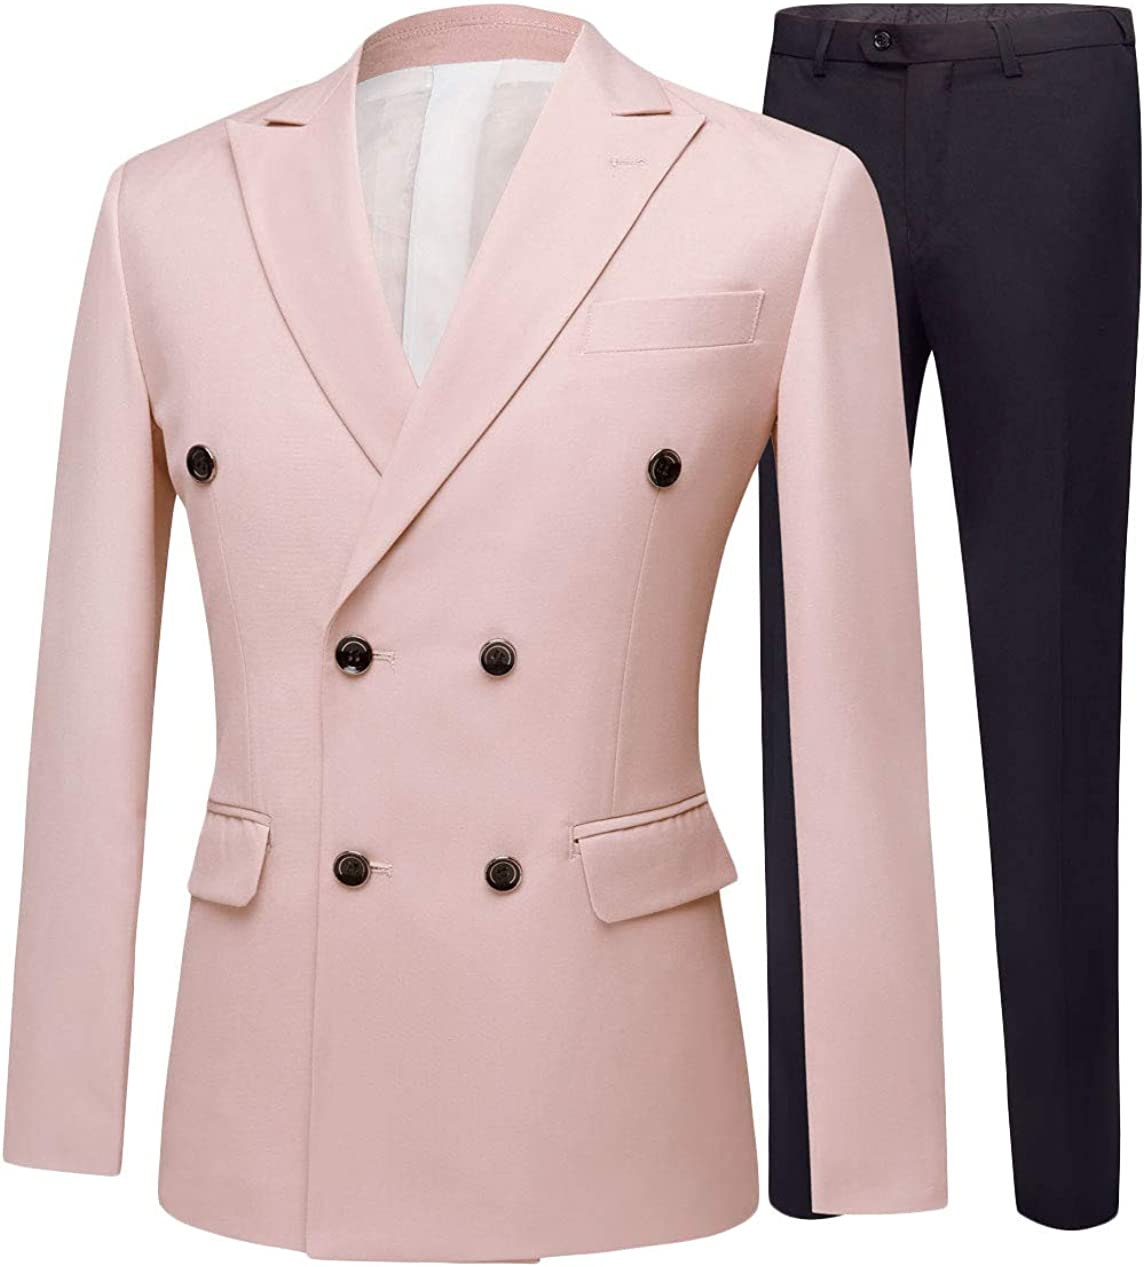 Botong Men's Slim Fit Double Breasted Suits Jacket Pants 2 Pieces Wedding Suit Groom Tuxedos